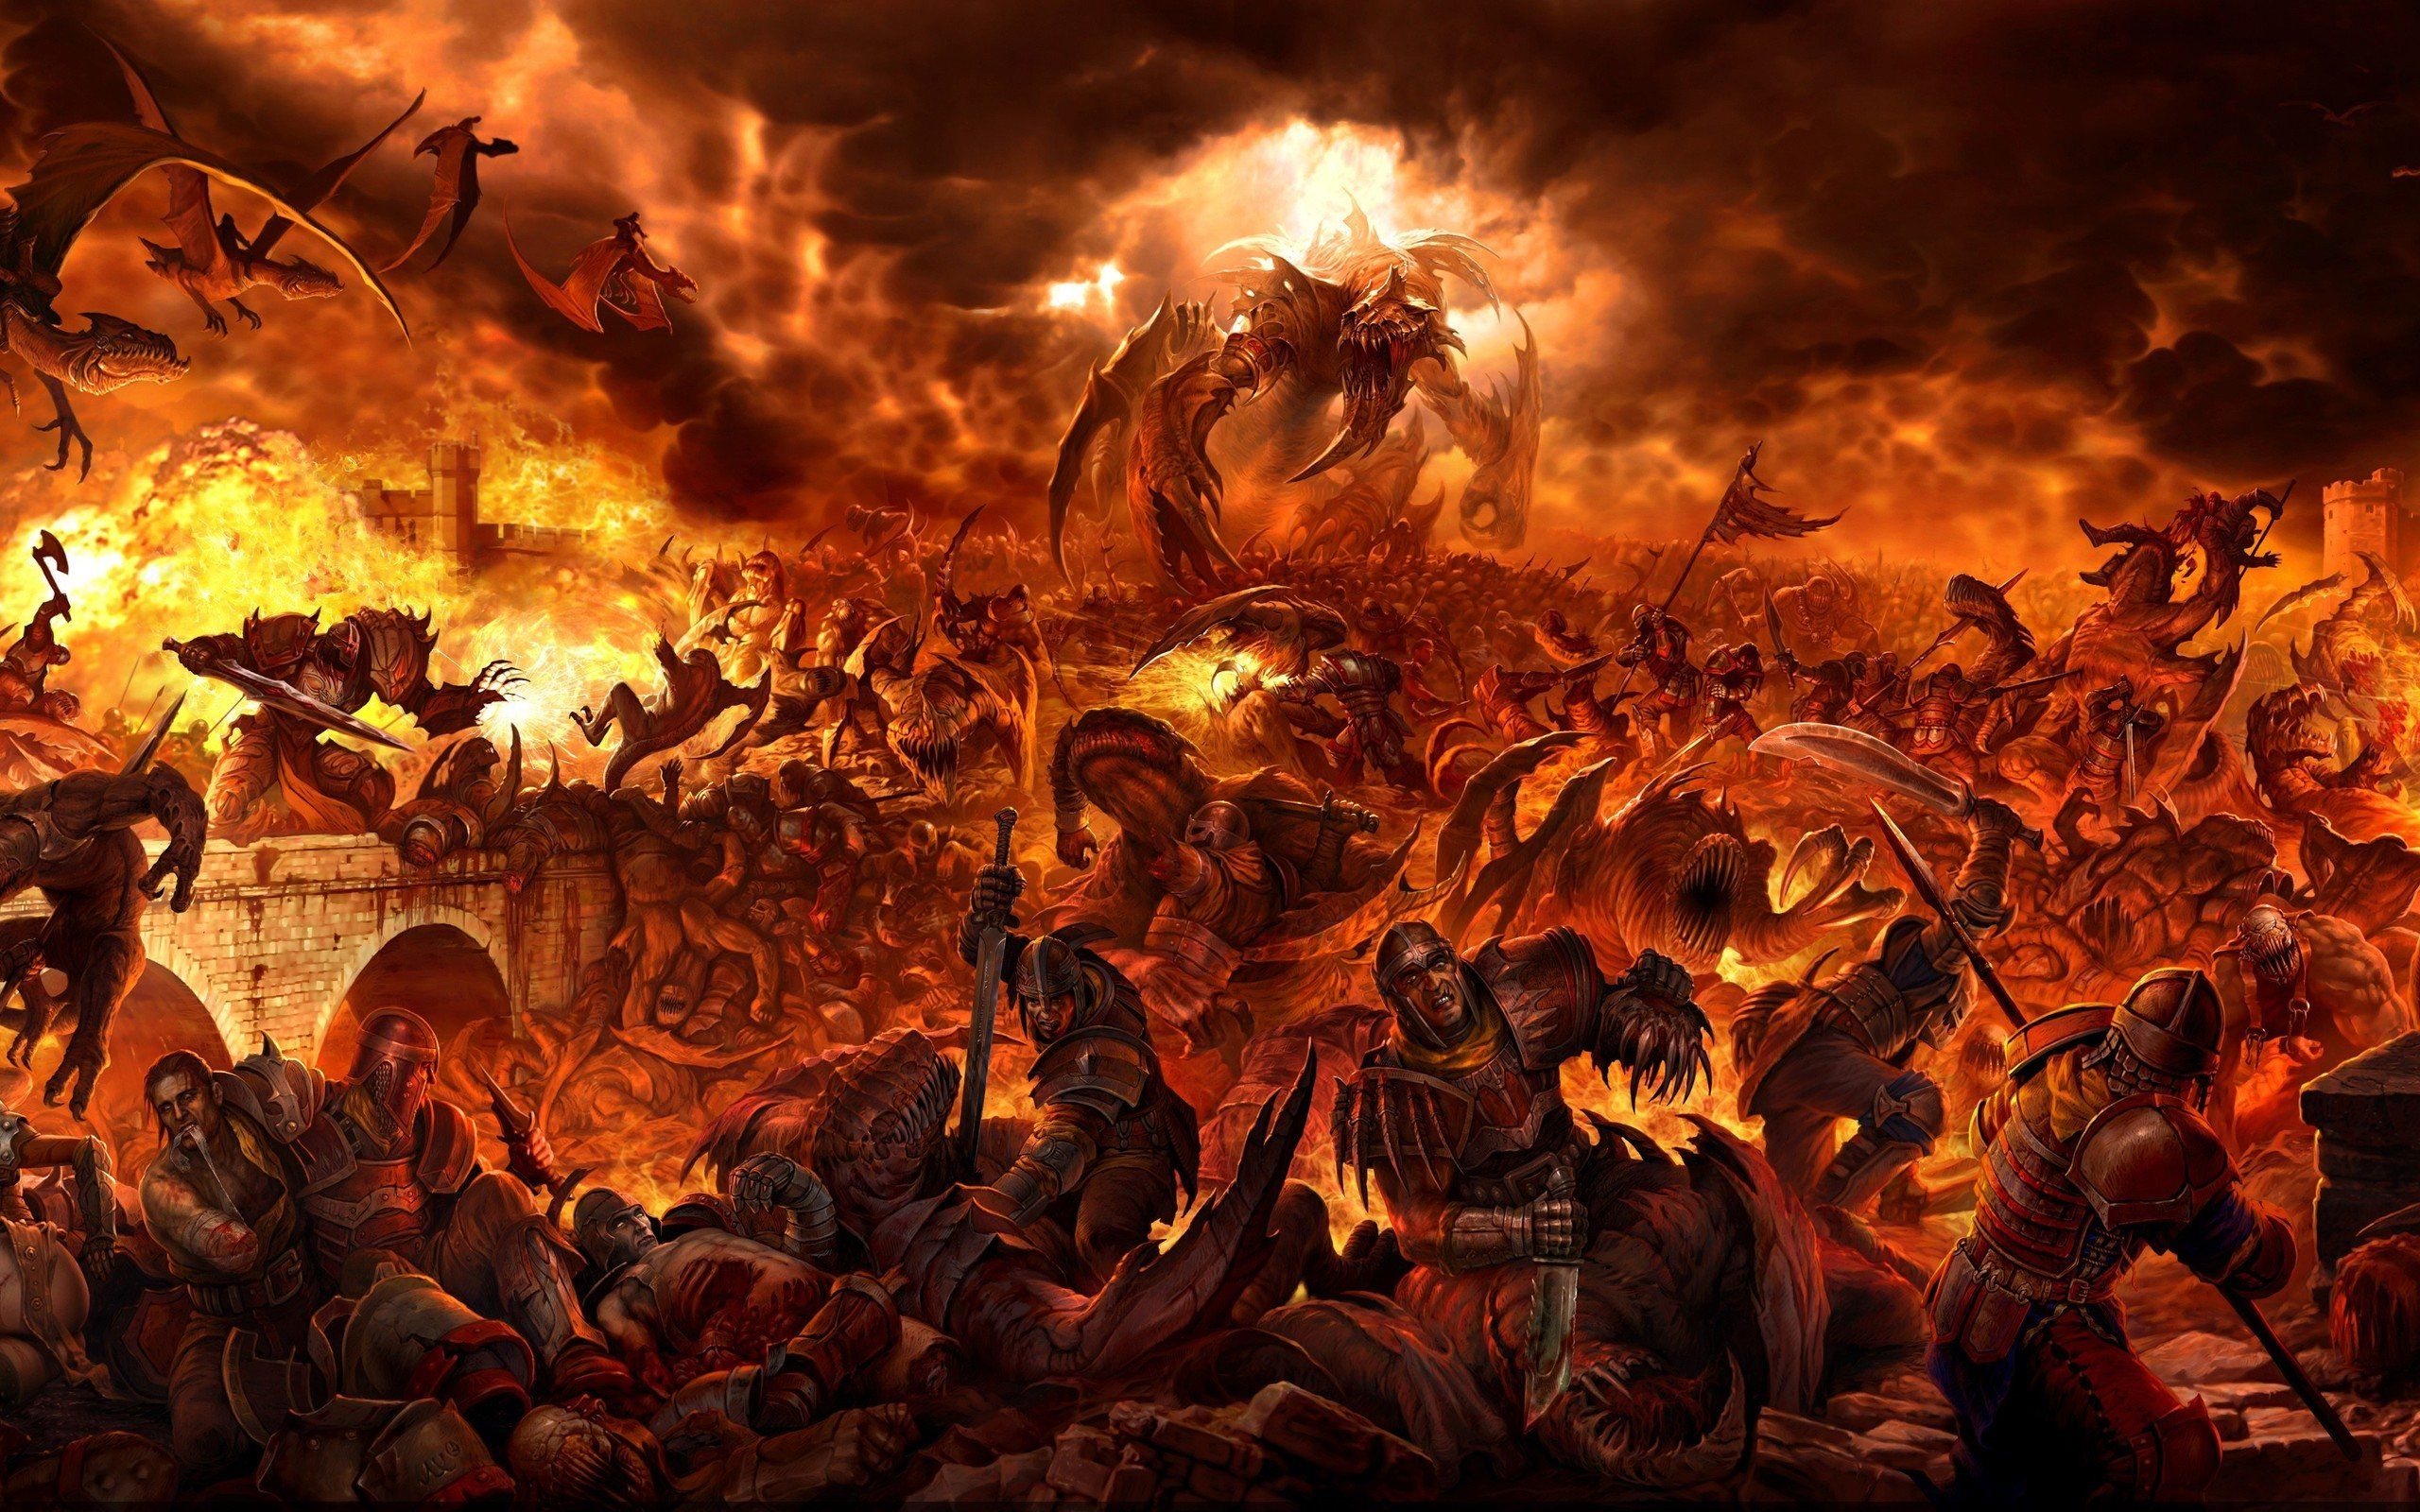 Epic Desktop Wallpapers And Backgrounds Epic Battle Desktop Wallpapers And Backgrounds Fantasy Battle Fantasy Fire Demon